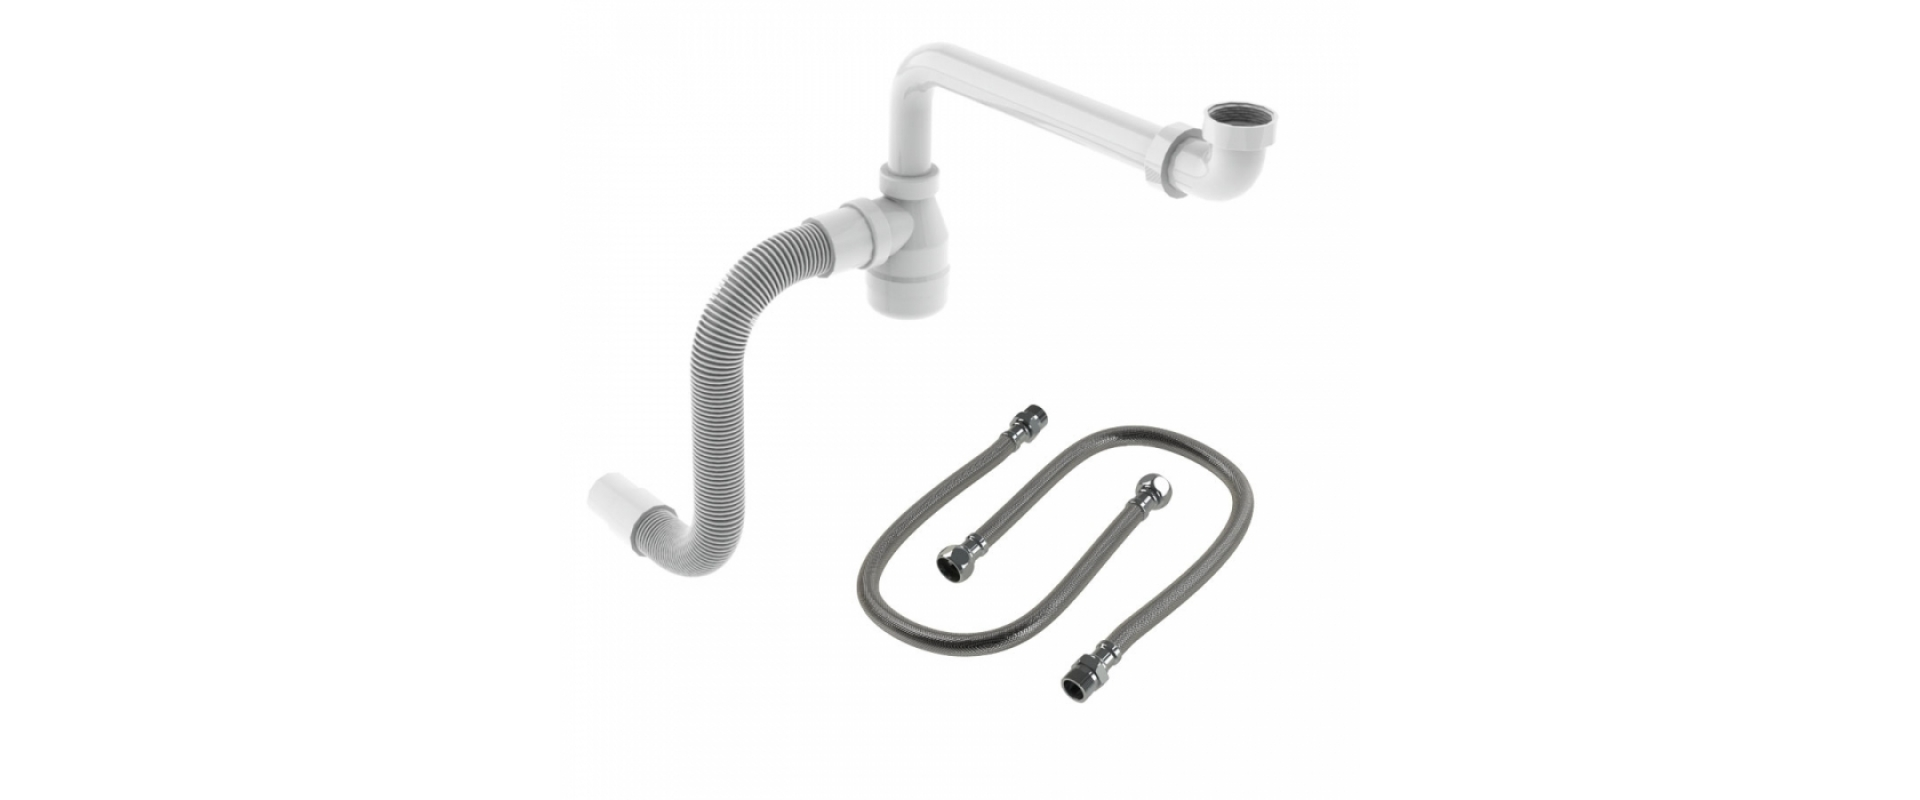 Flexible hoses for Washbasin lifts